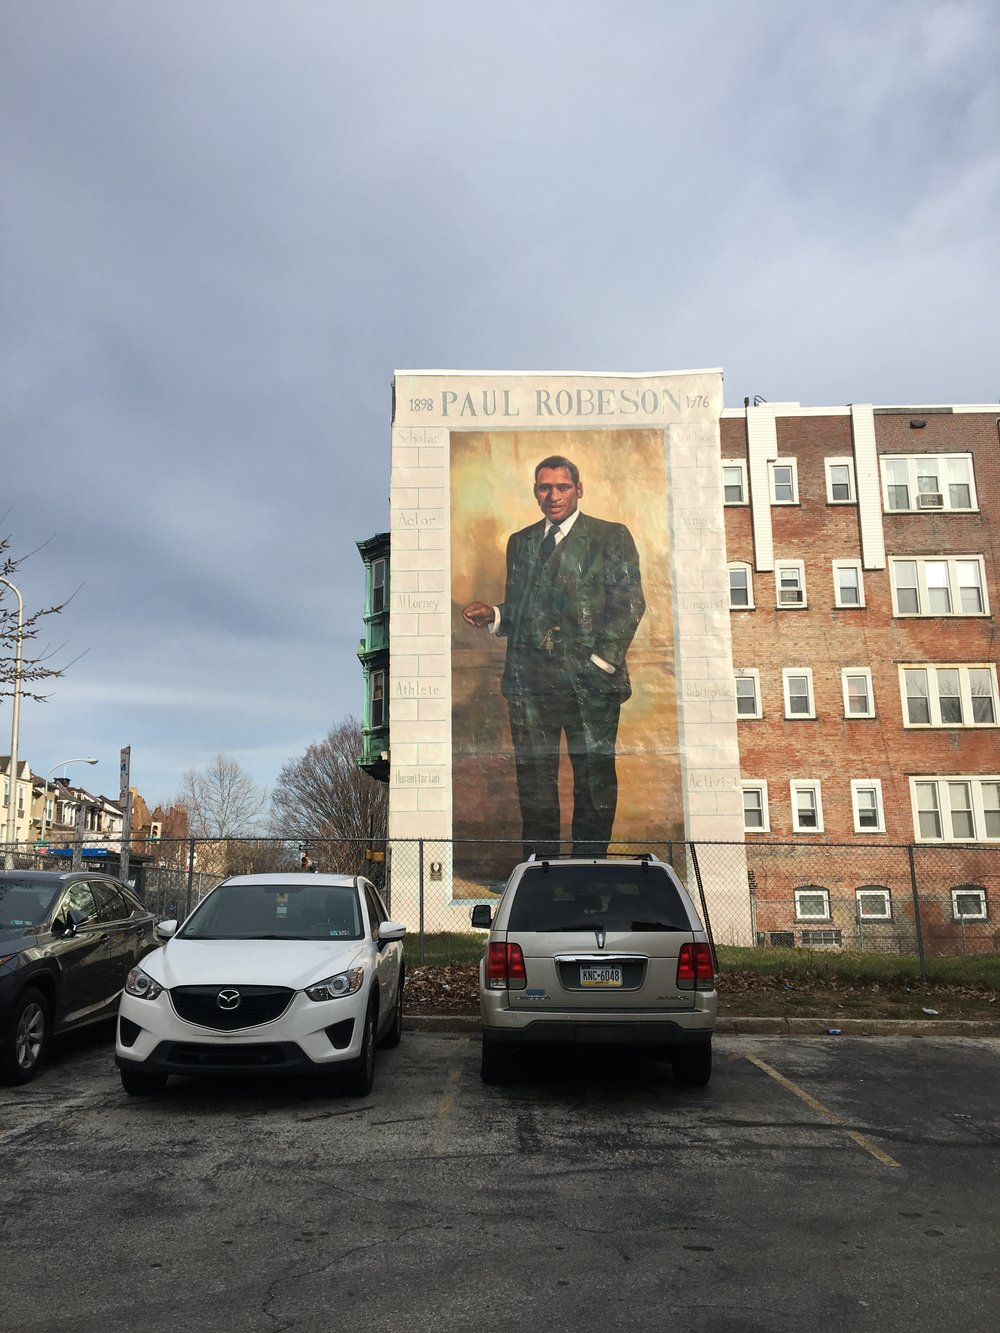 Driving down the street in Philadelphia and i spotted this massive mural on the side of a building. I had to stop!